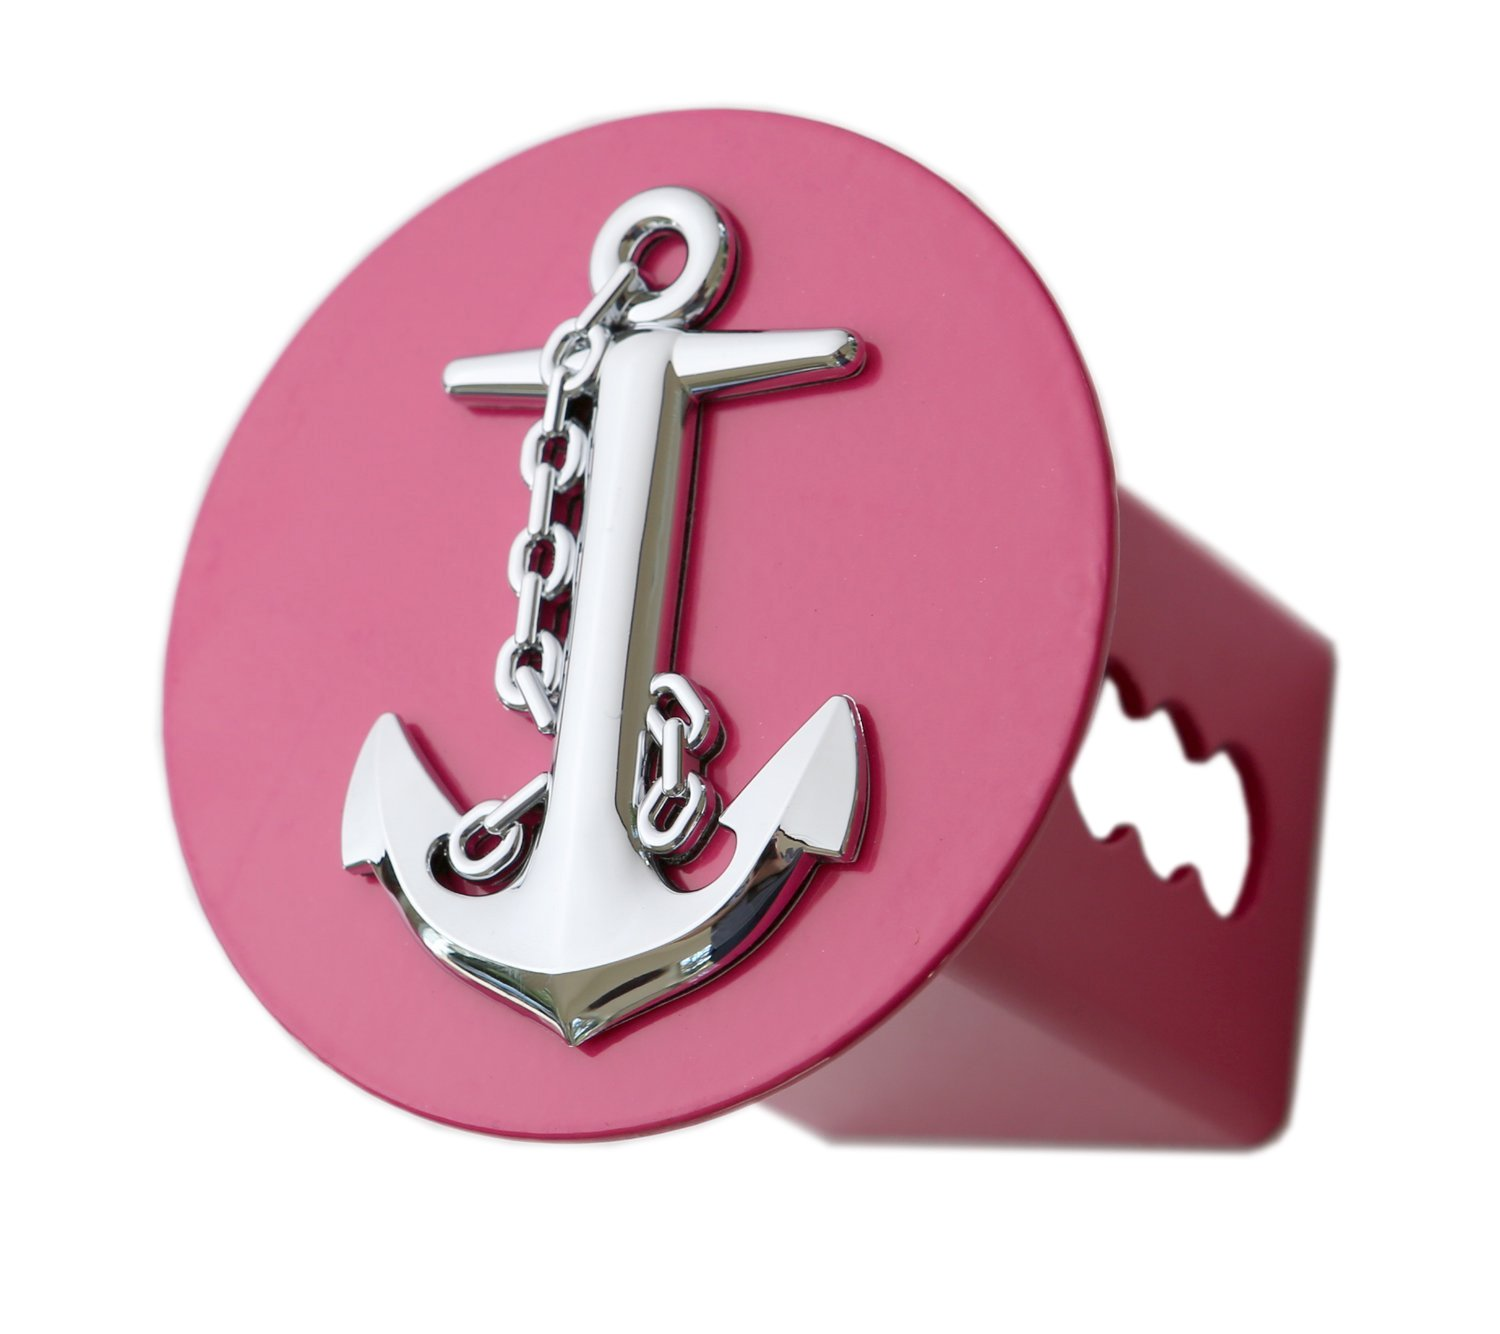 LFPartS 3D Chrome Ship Anchor Emblem on Hot Pink Metal Trailer Hitch Cover Fits 2'' Receivers (round) by LFPartS